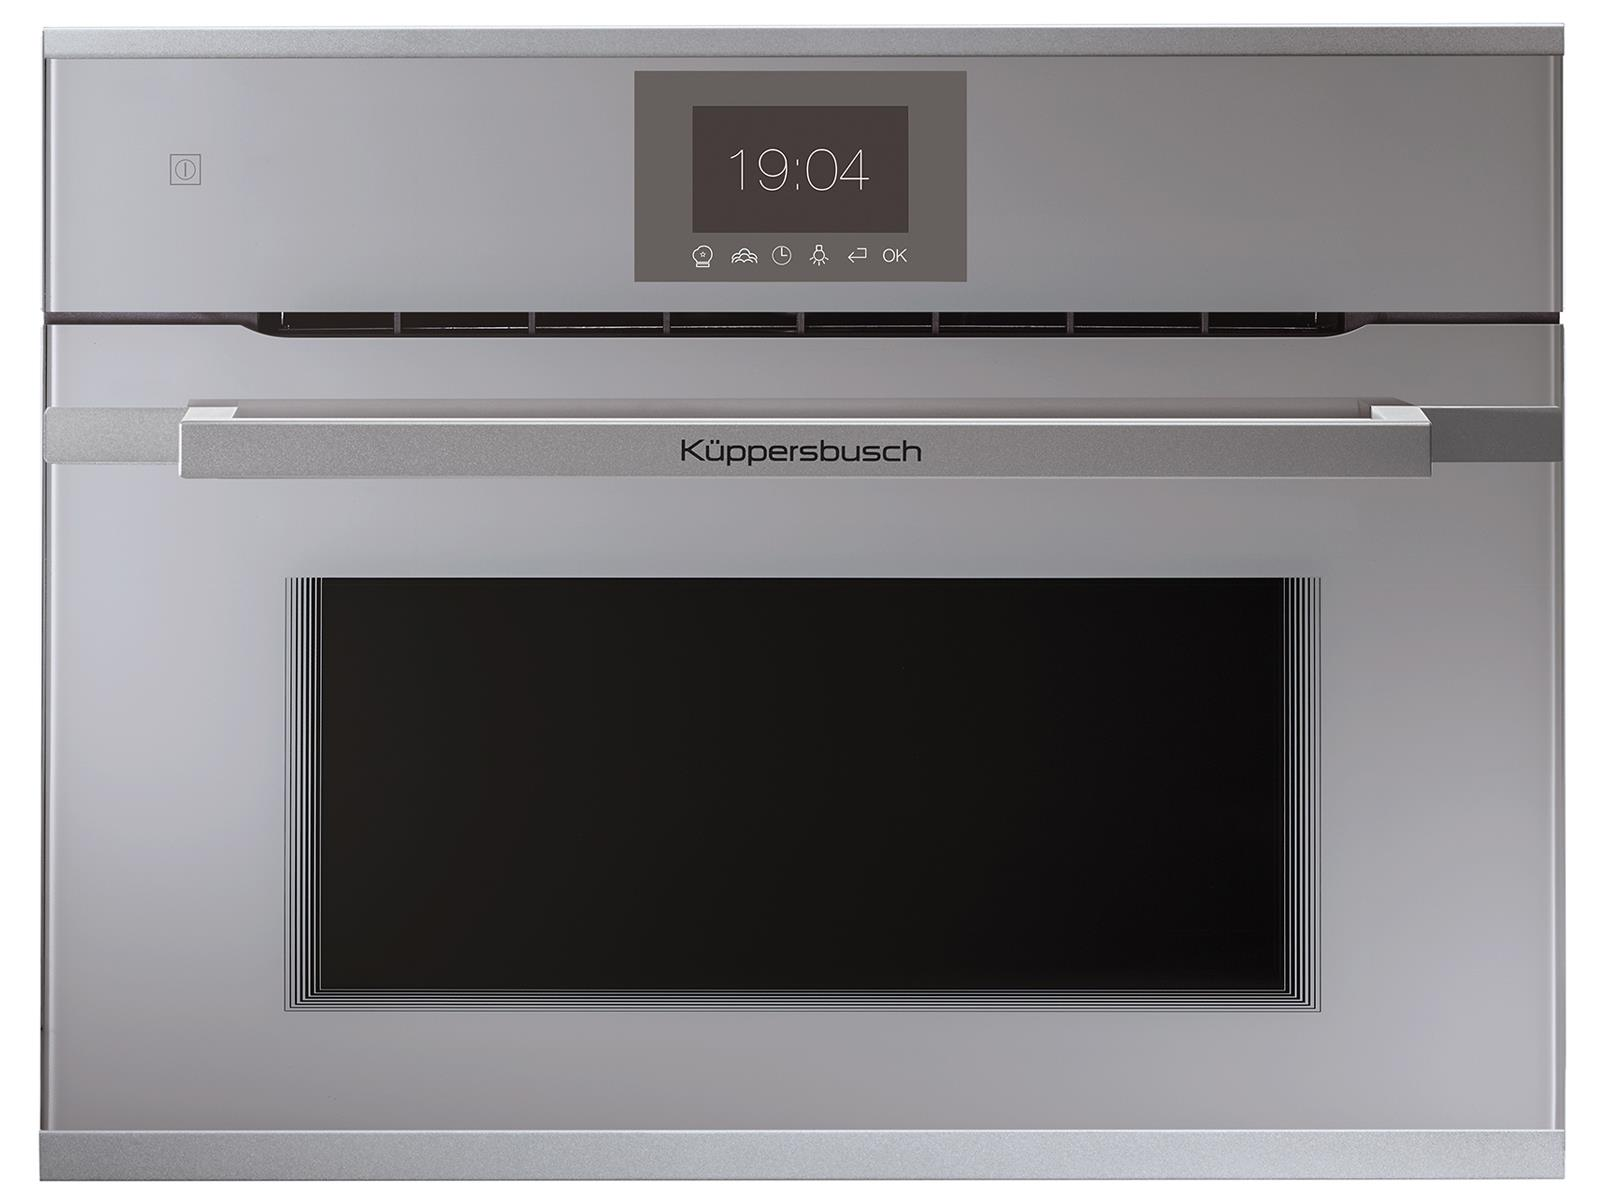 Küppersbusch CBP6550.0G9 K-Series.5 Pyrolyse Backofen Shade of Grey